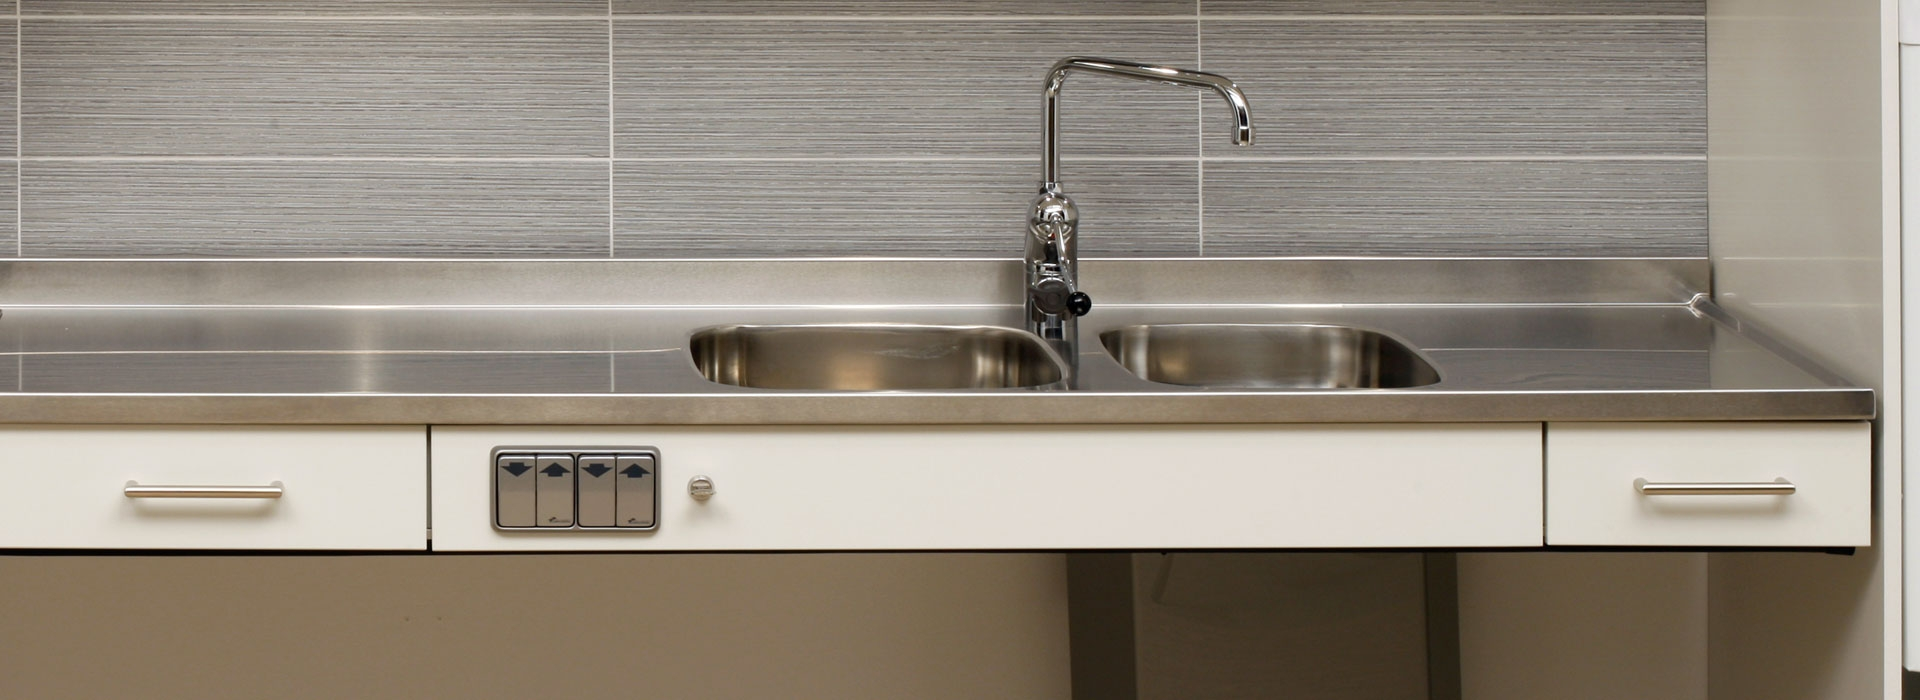 Sit-on sinks With Shallow Bowl | Sinks & taps | Granberg Interior AB ...